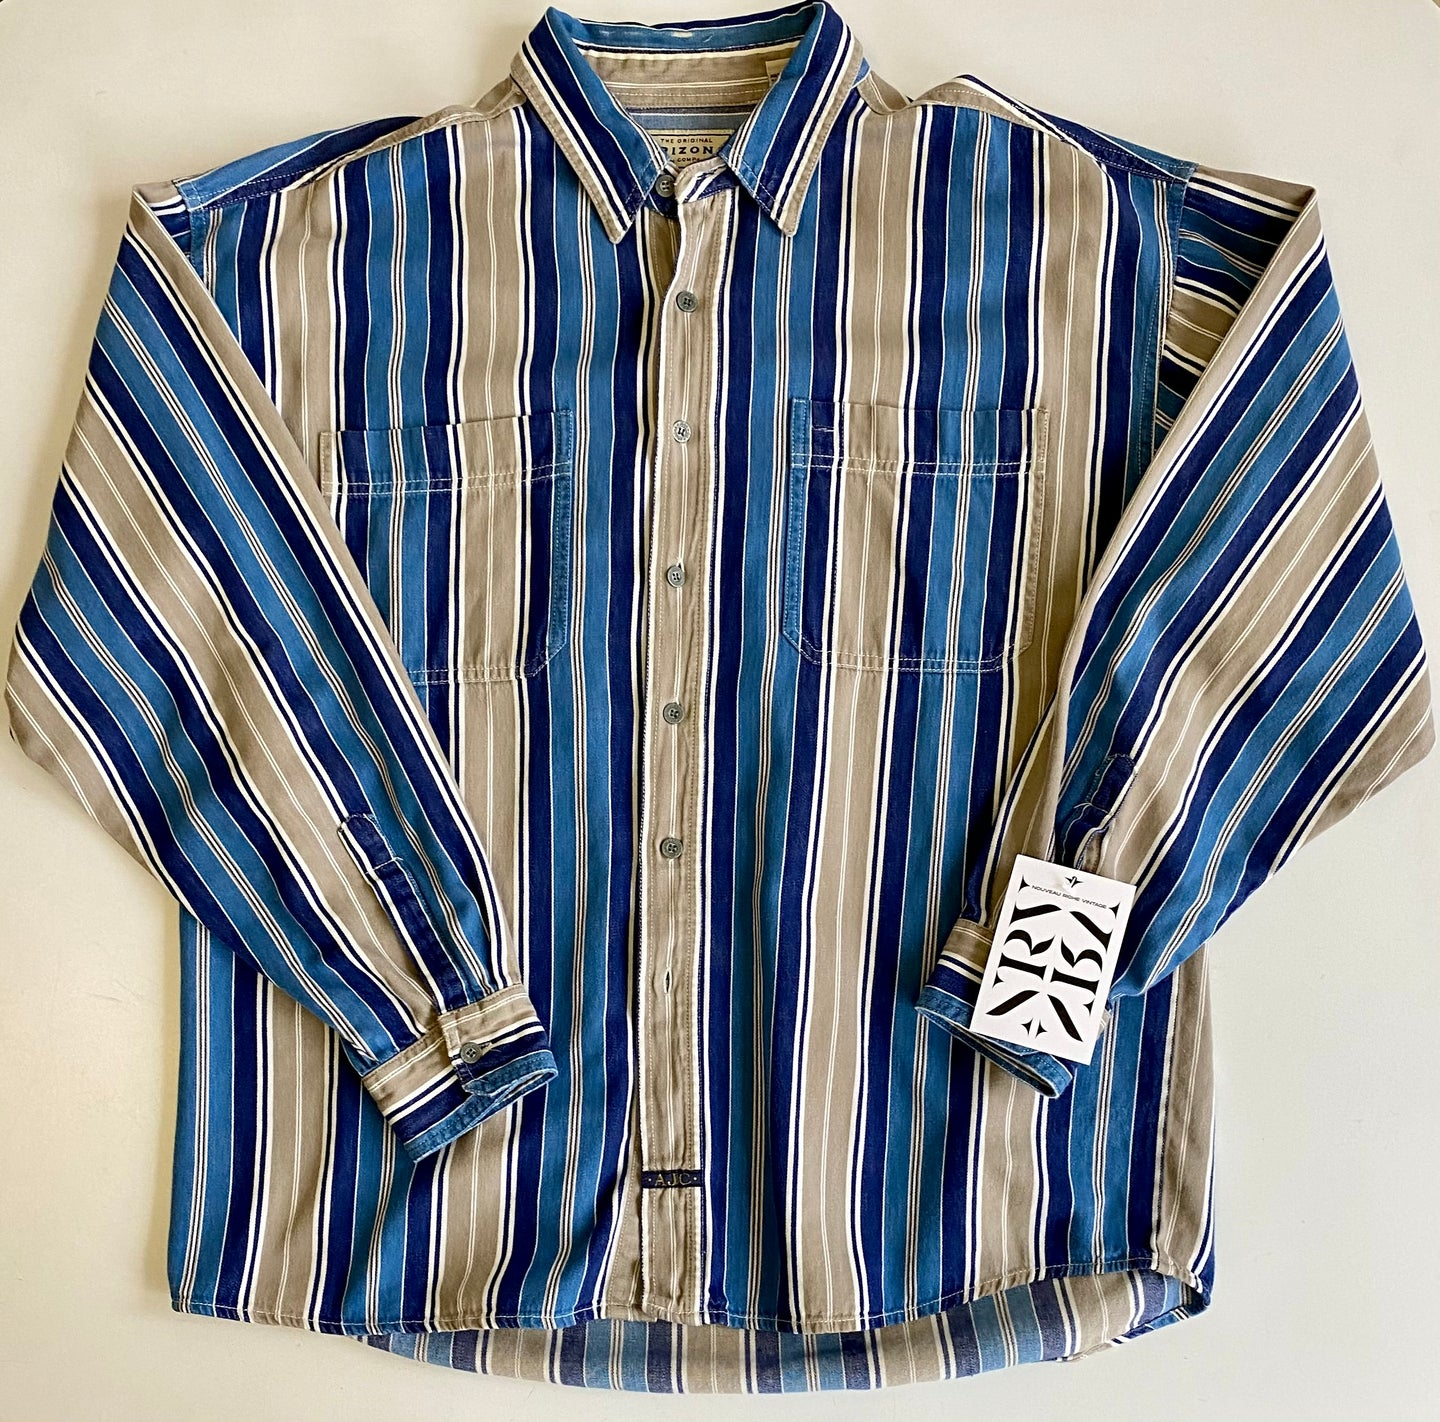 Denim stripe shirt